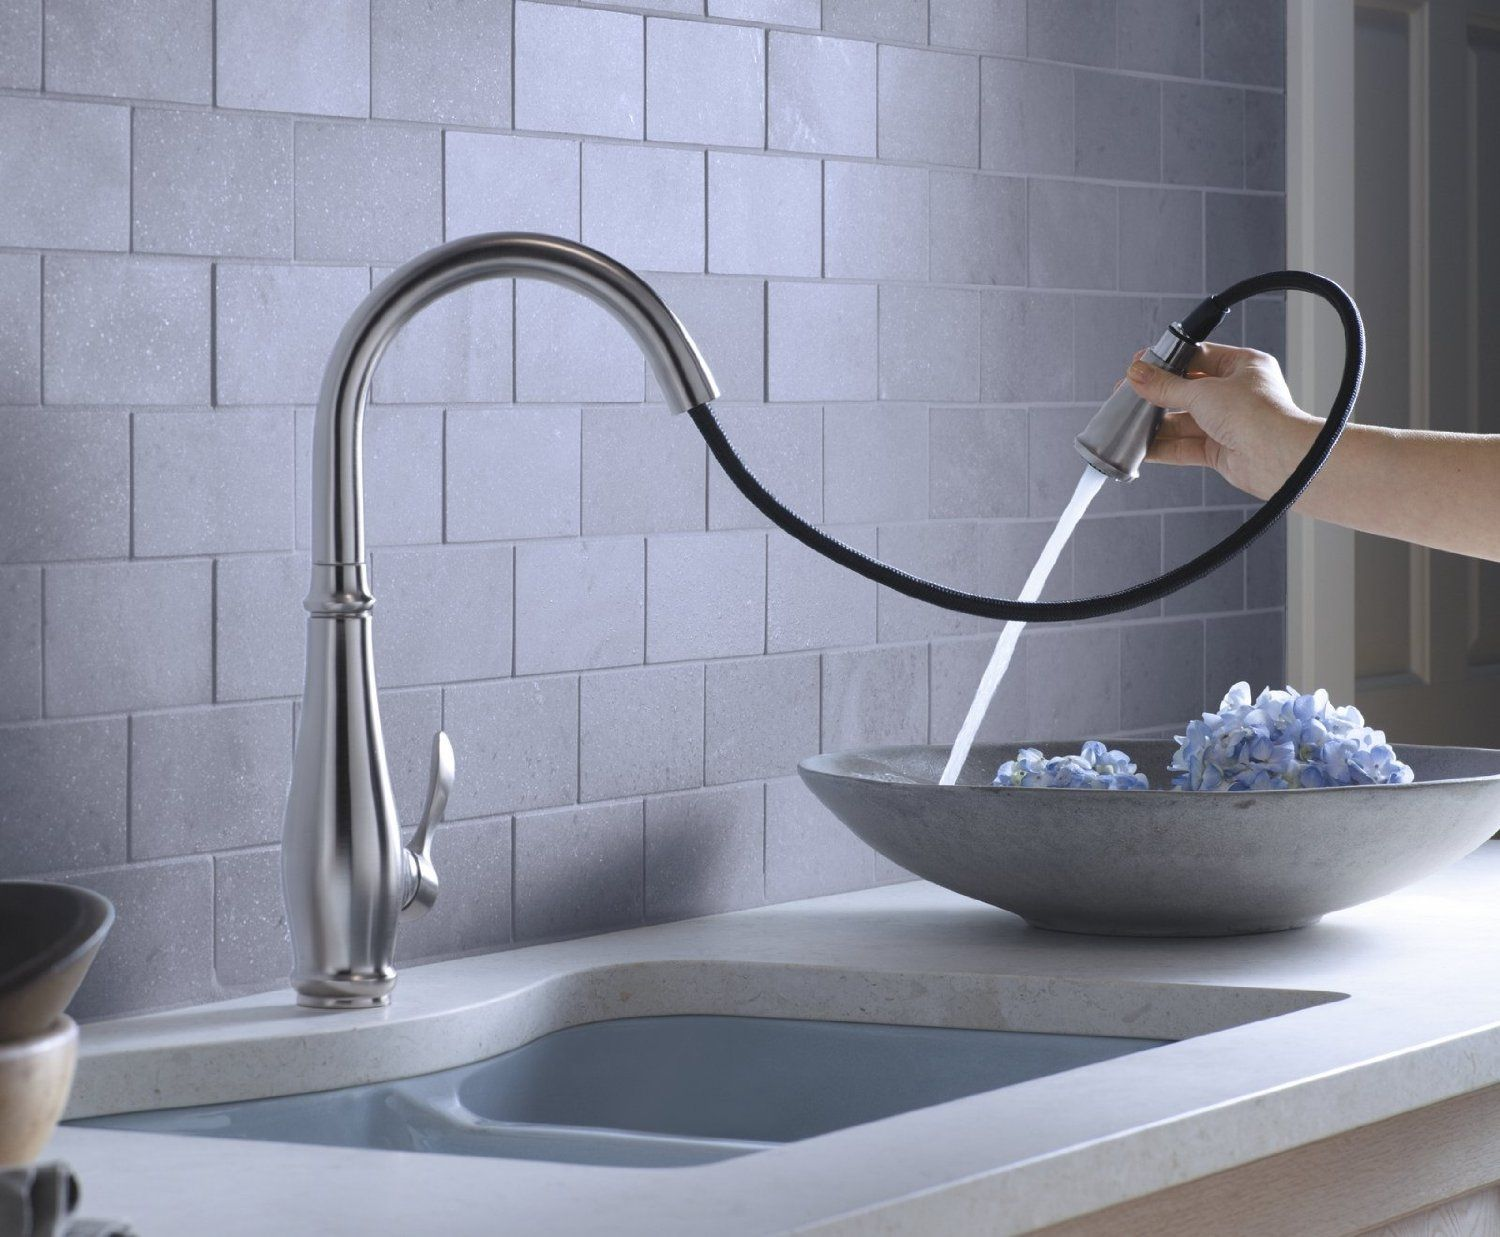 Top Rated Kitchen Faucets 2017